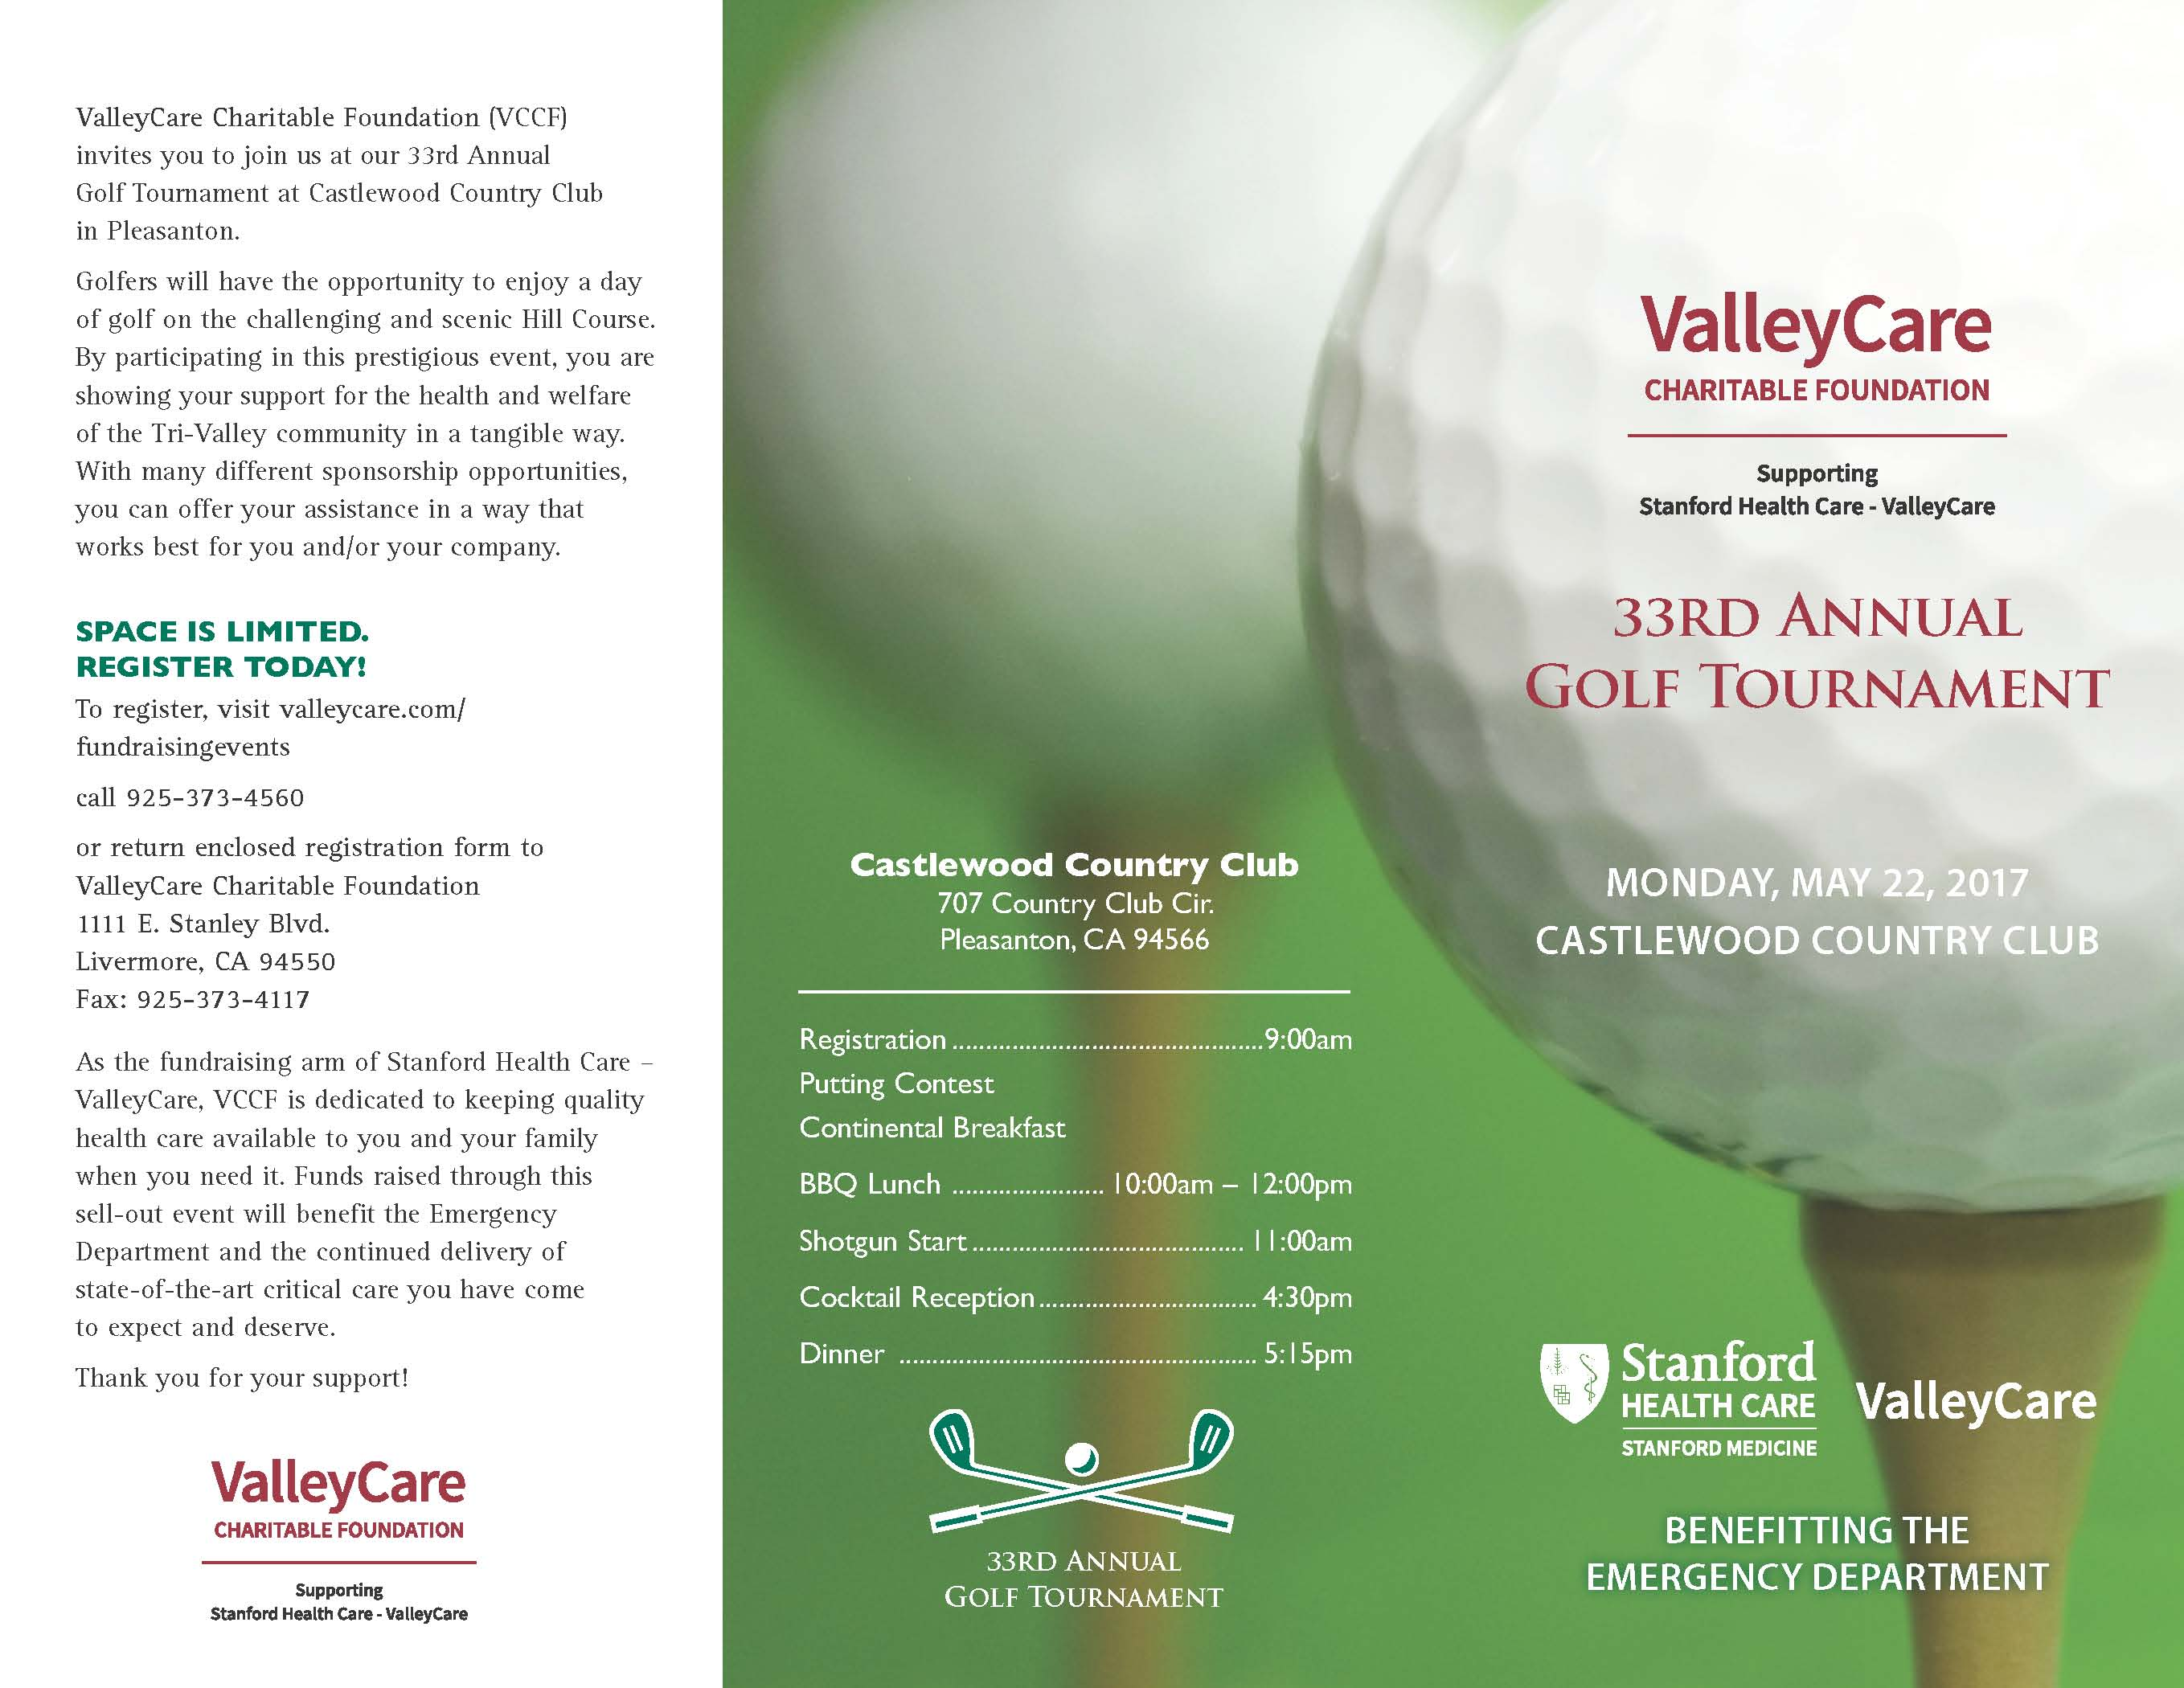 ValleyCare Charitable Foundation 33rd Annual Golf Tournament, May 22